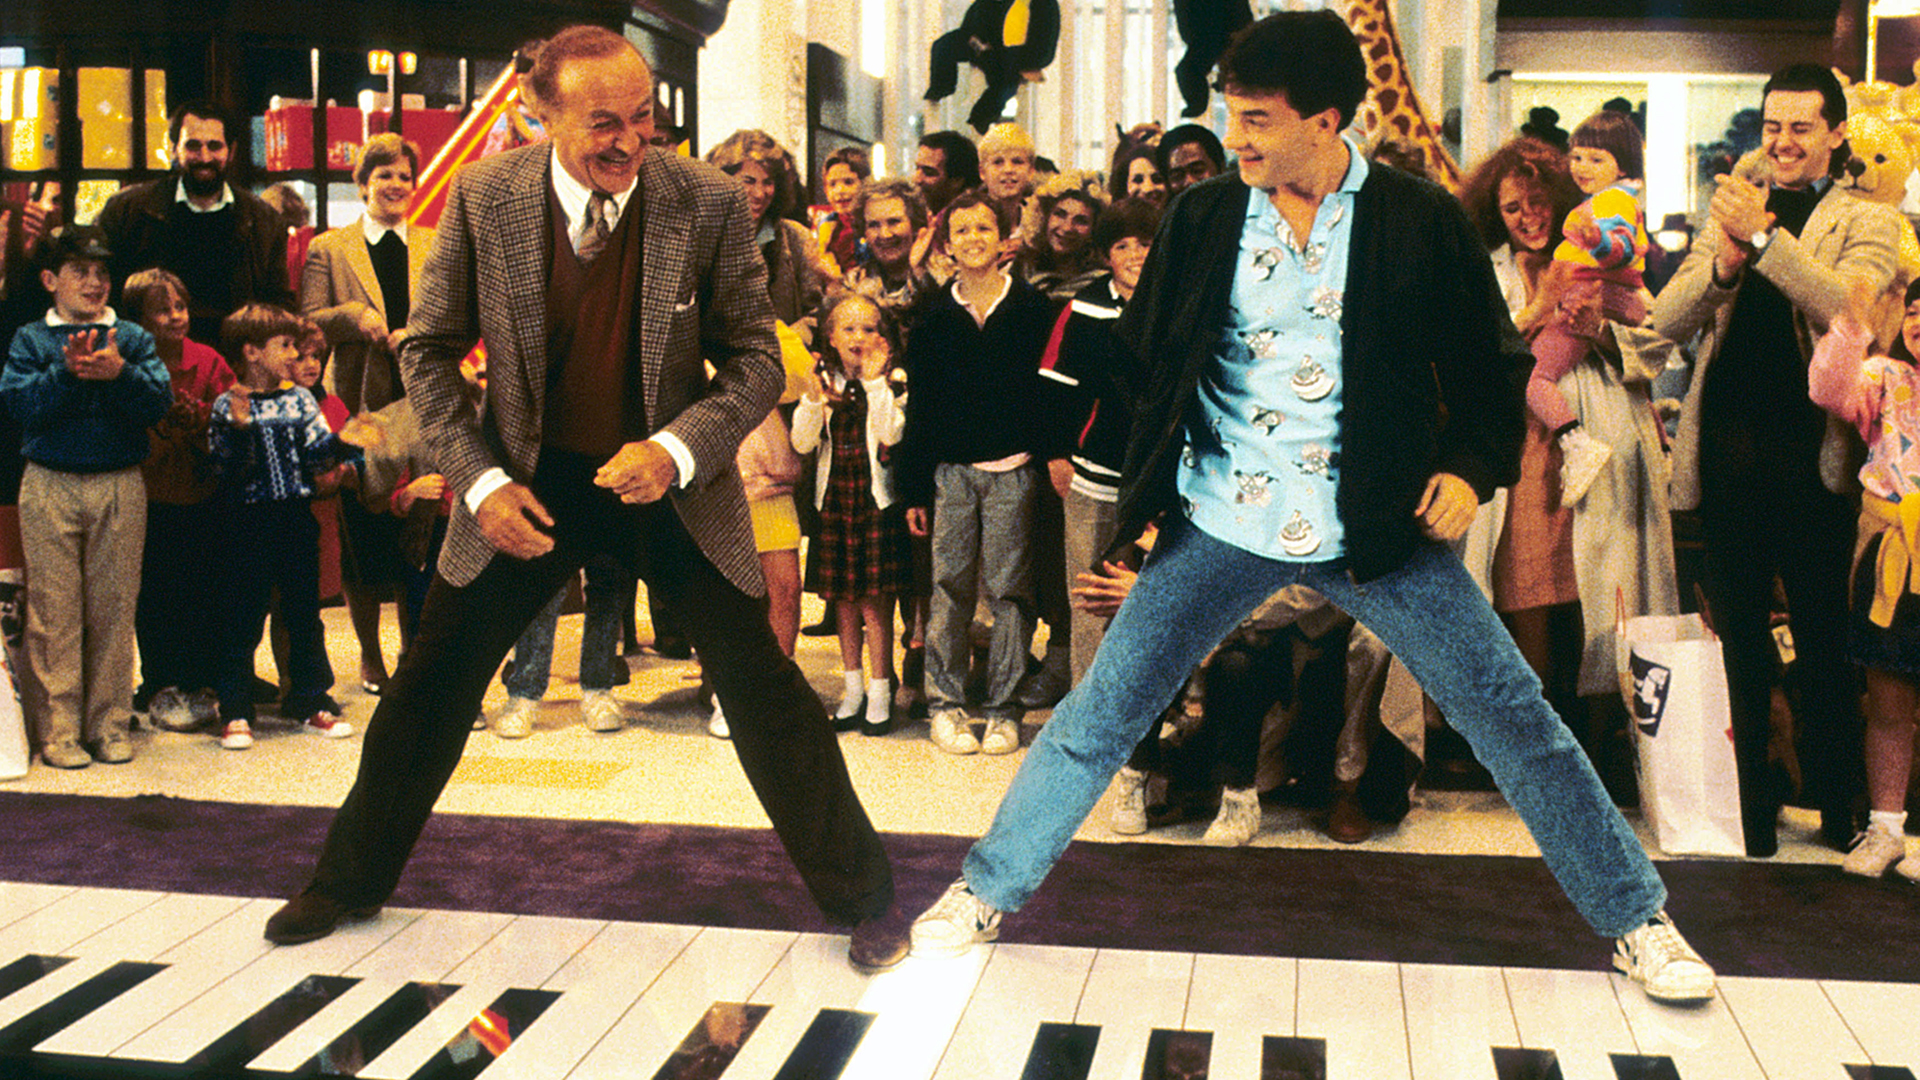 Tom Hanks' 'Big' is returning to theaters for 30th anniversary